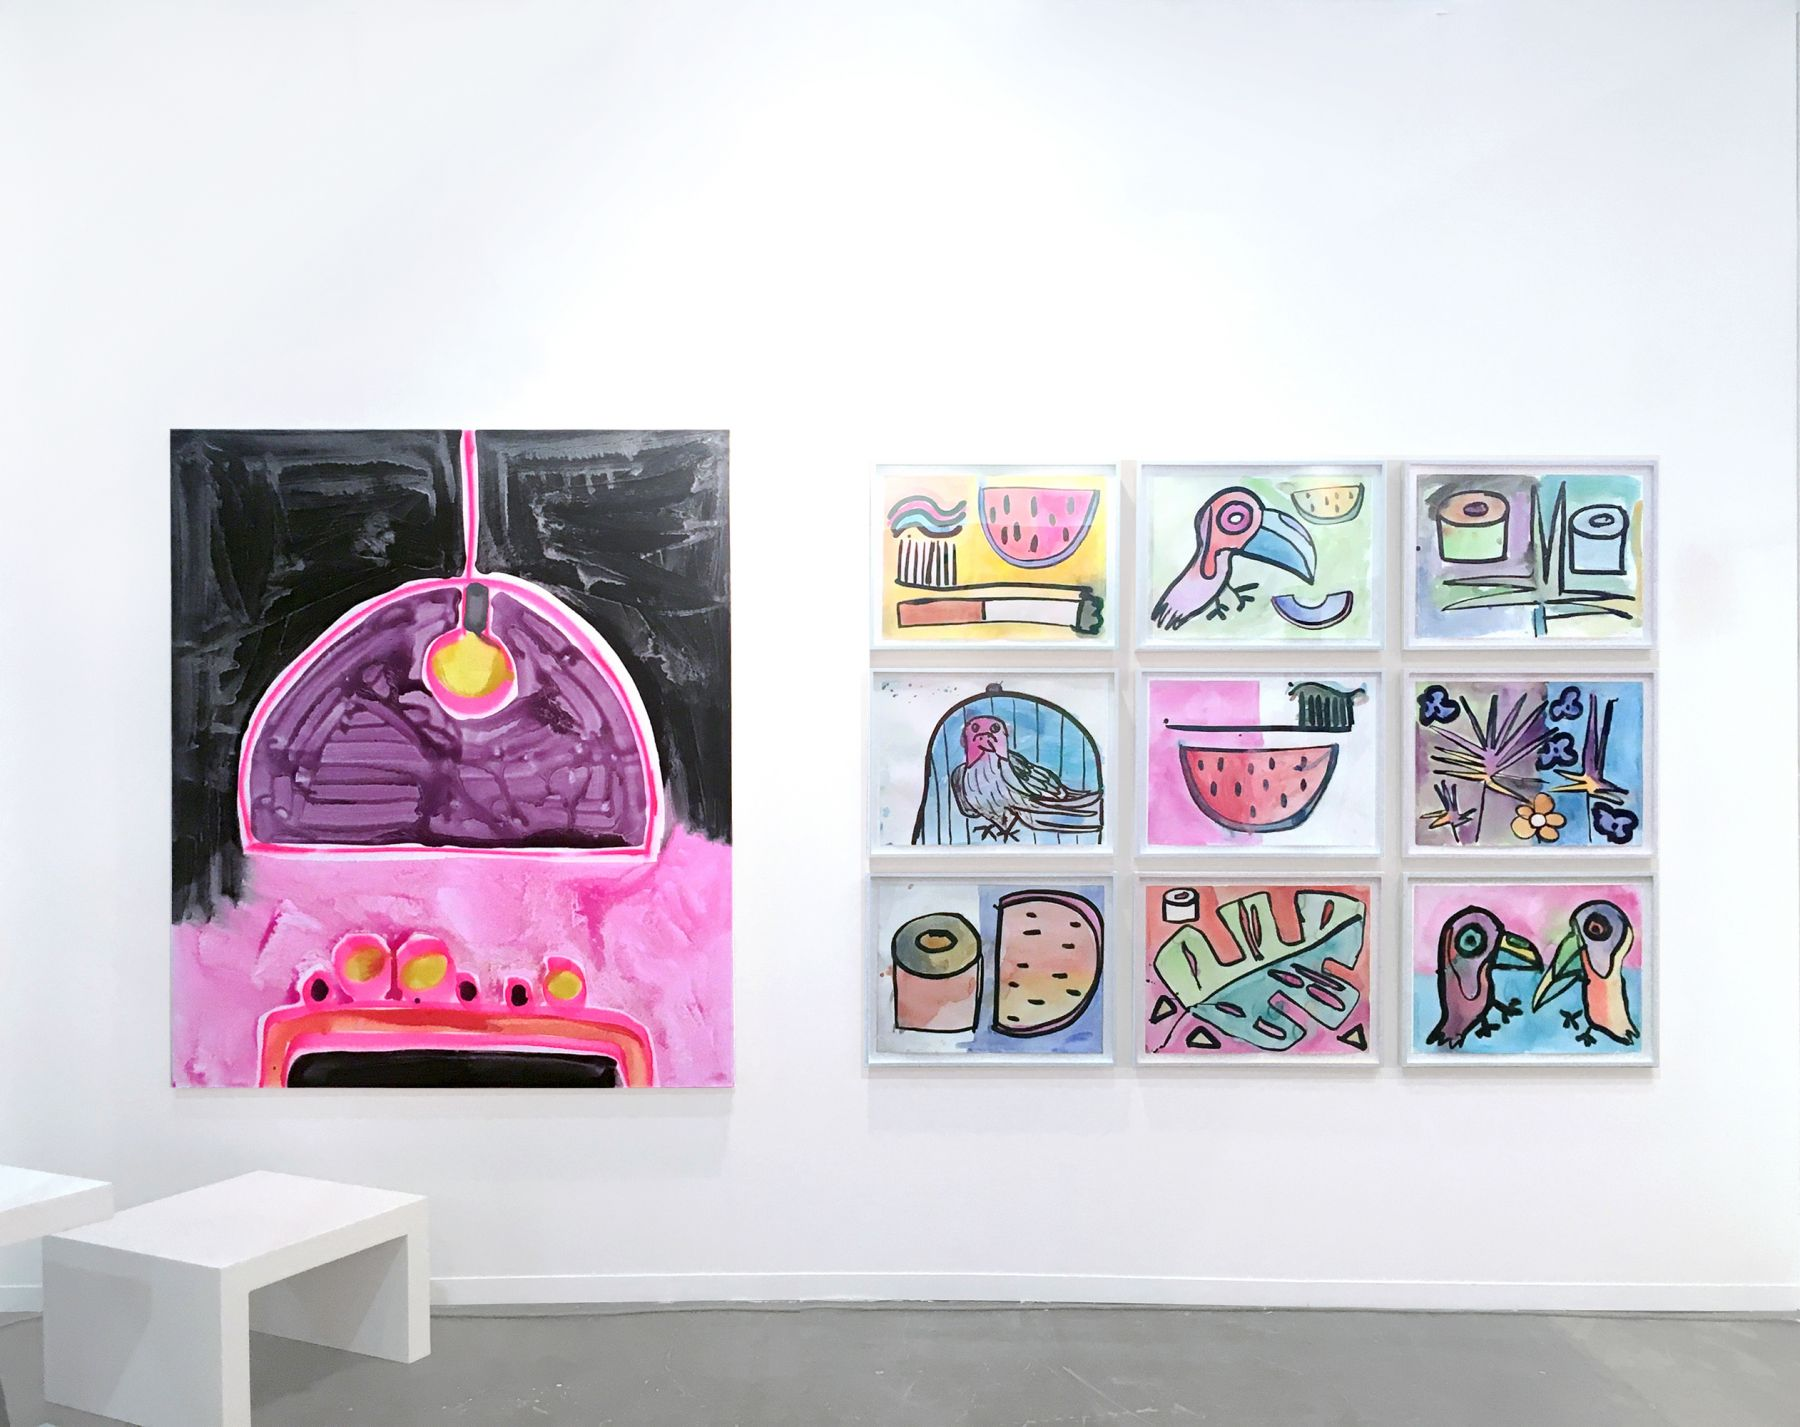 Installation view of Katherine Bernhardt and Sarah Braman, Zona Maco, Mexico City, 2016